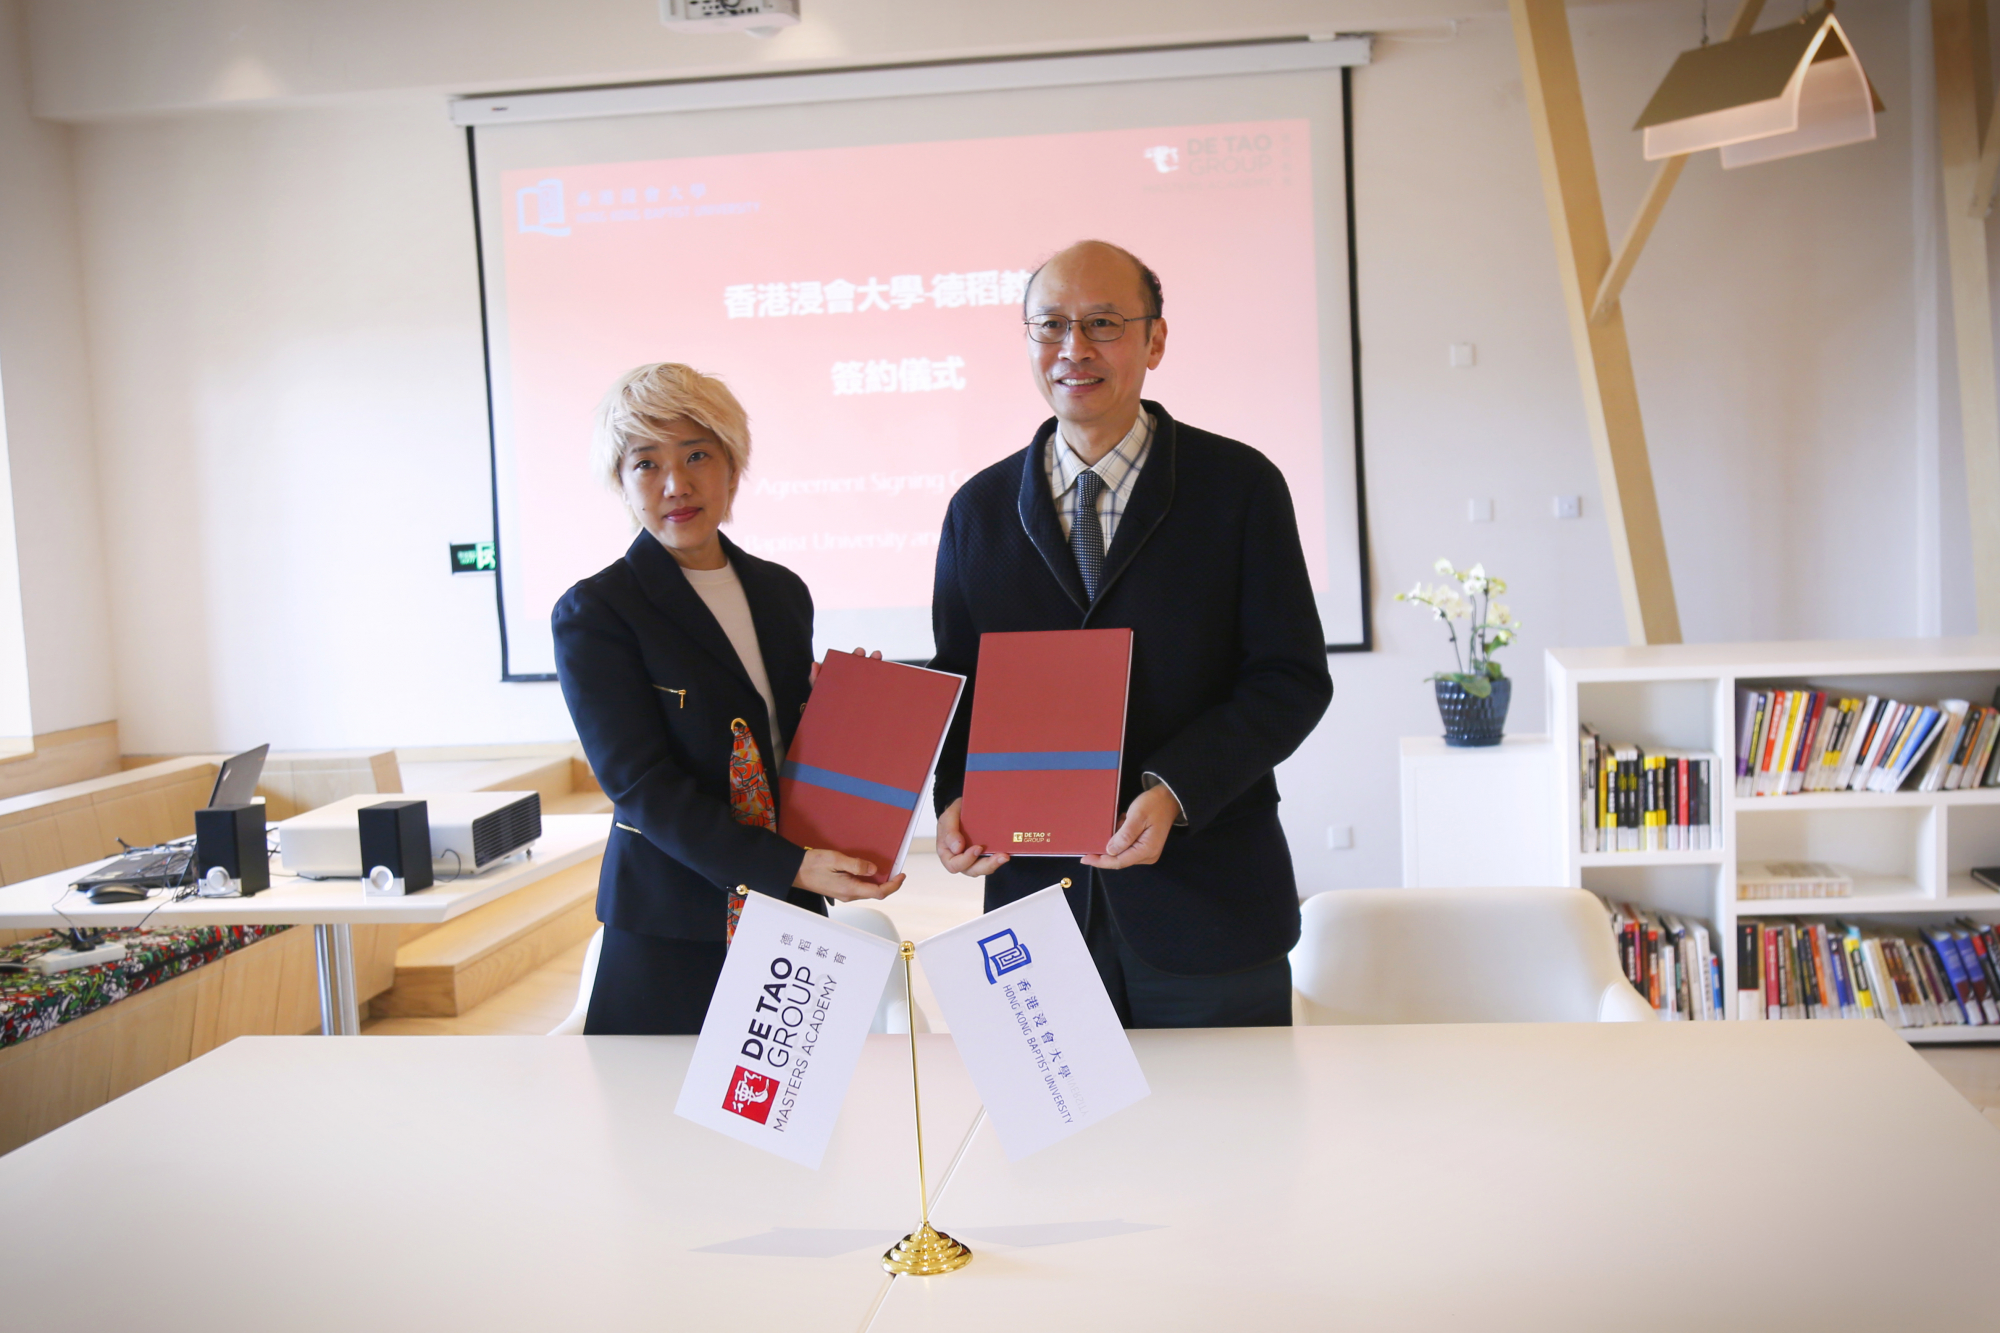 School of Communication, HKBU embarks strategic cooperation with DeTao Group